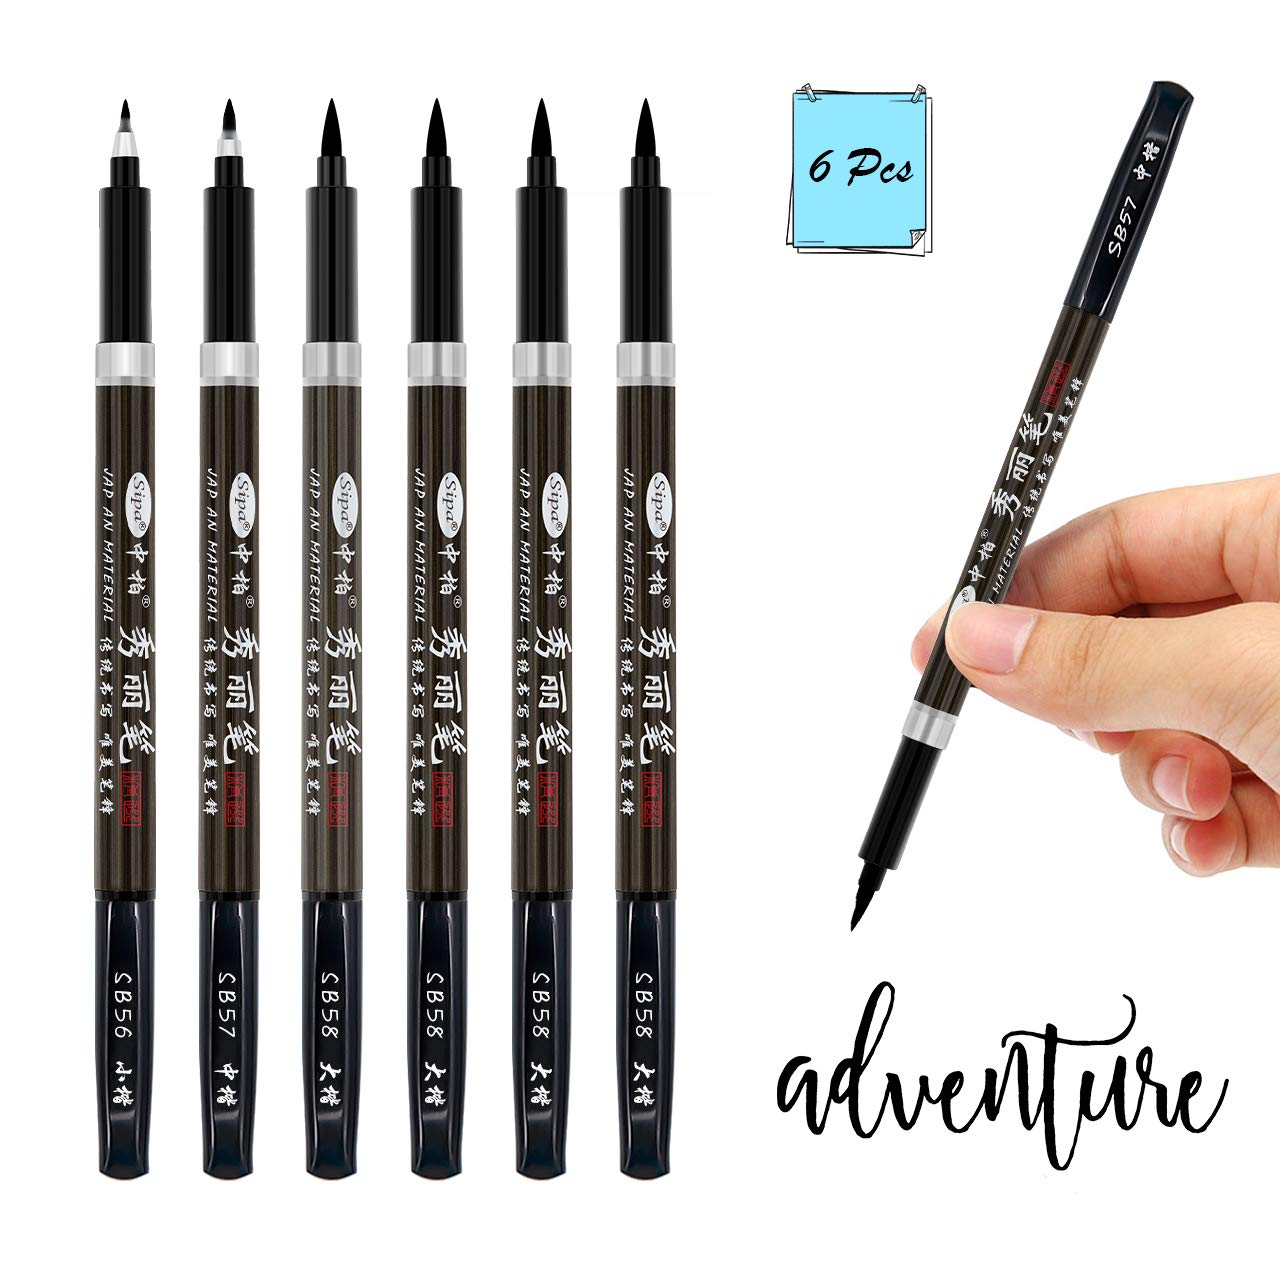 2a6ebbff20b0 Hand Lettering Pens, Bowite Calligraphy Pens for Beginner, Pack of 6, 1 x  Fine, 1 x Medium and 4 x Brush Black, Universal Calligraphy, Sketch  Outline, ...